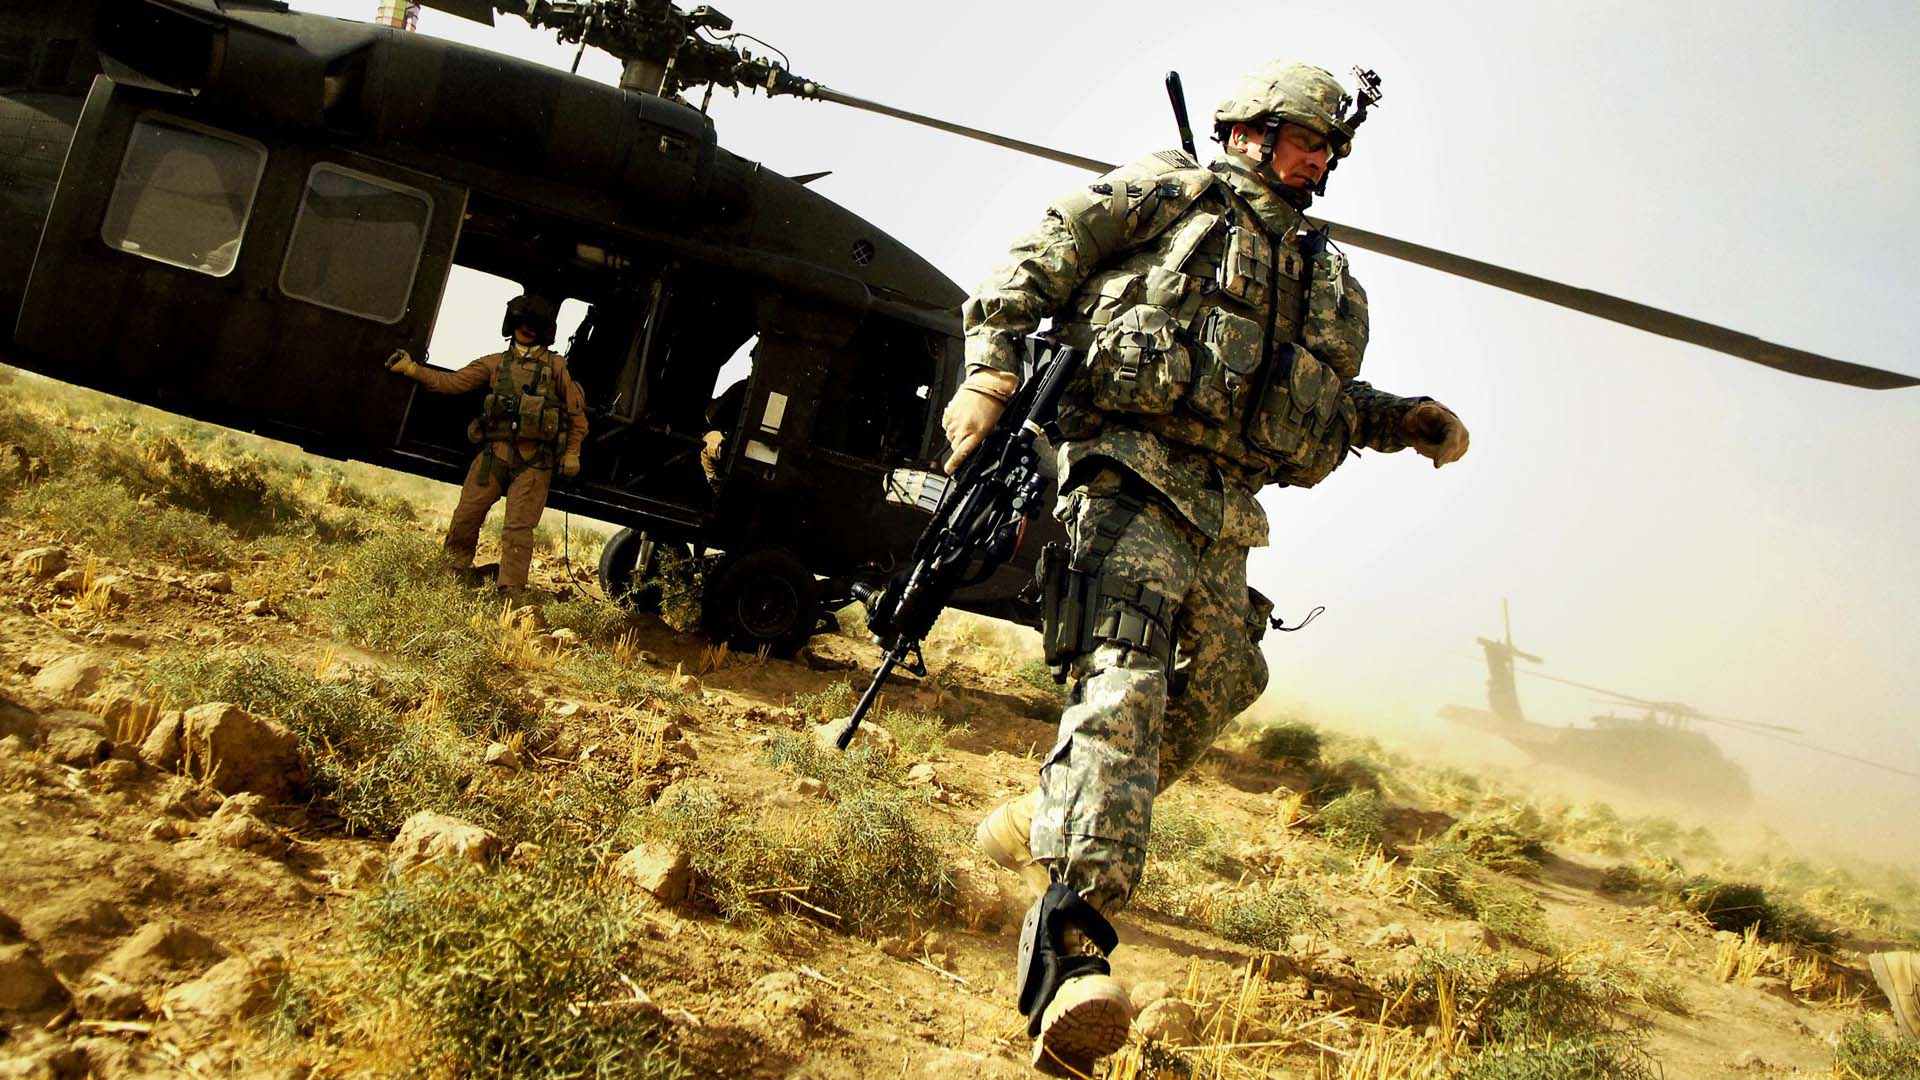 Us Army Soldier Wallpapers Full HD Daily Backgrounds in HD 1920x1080